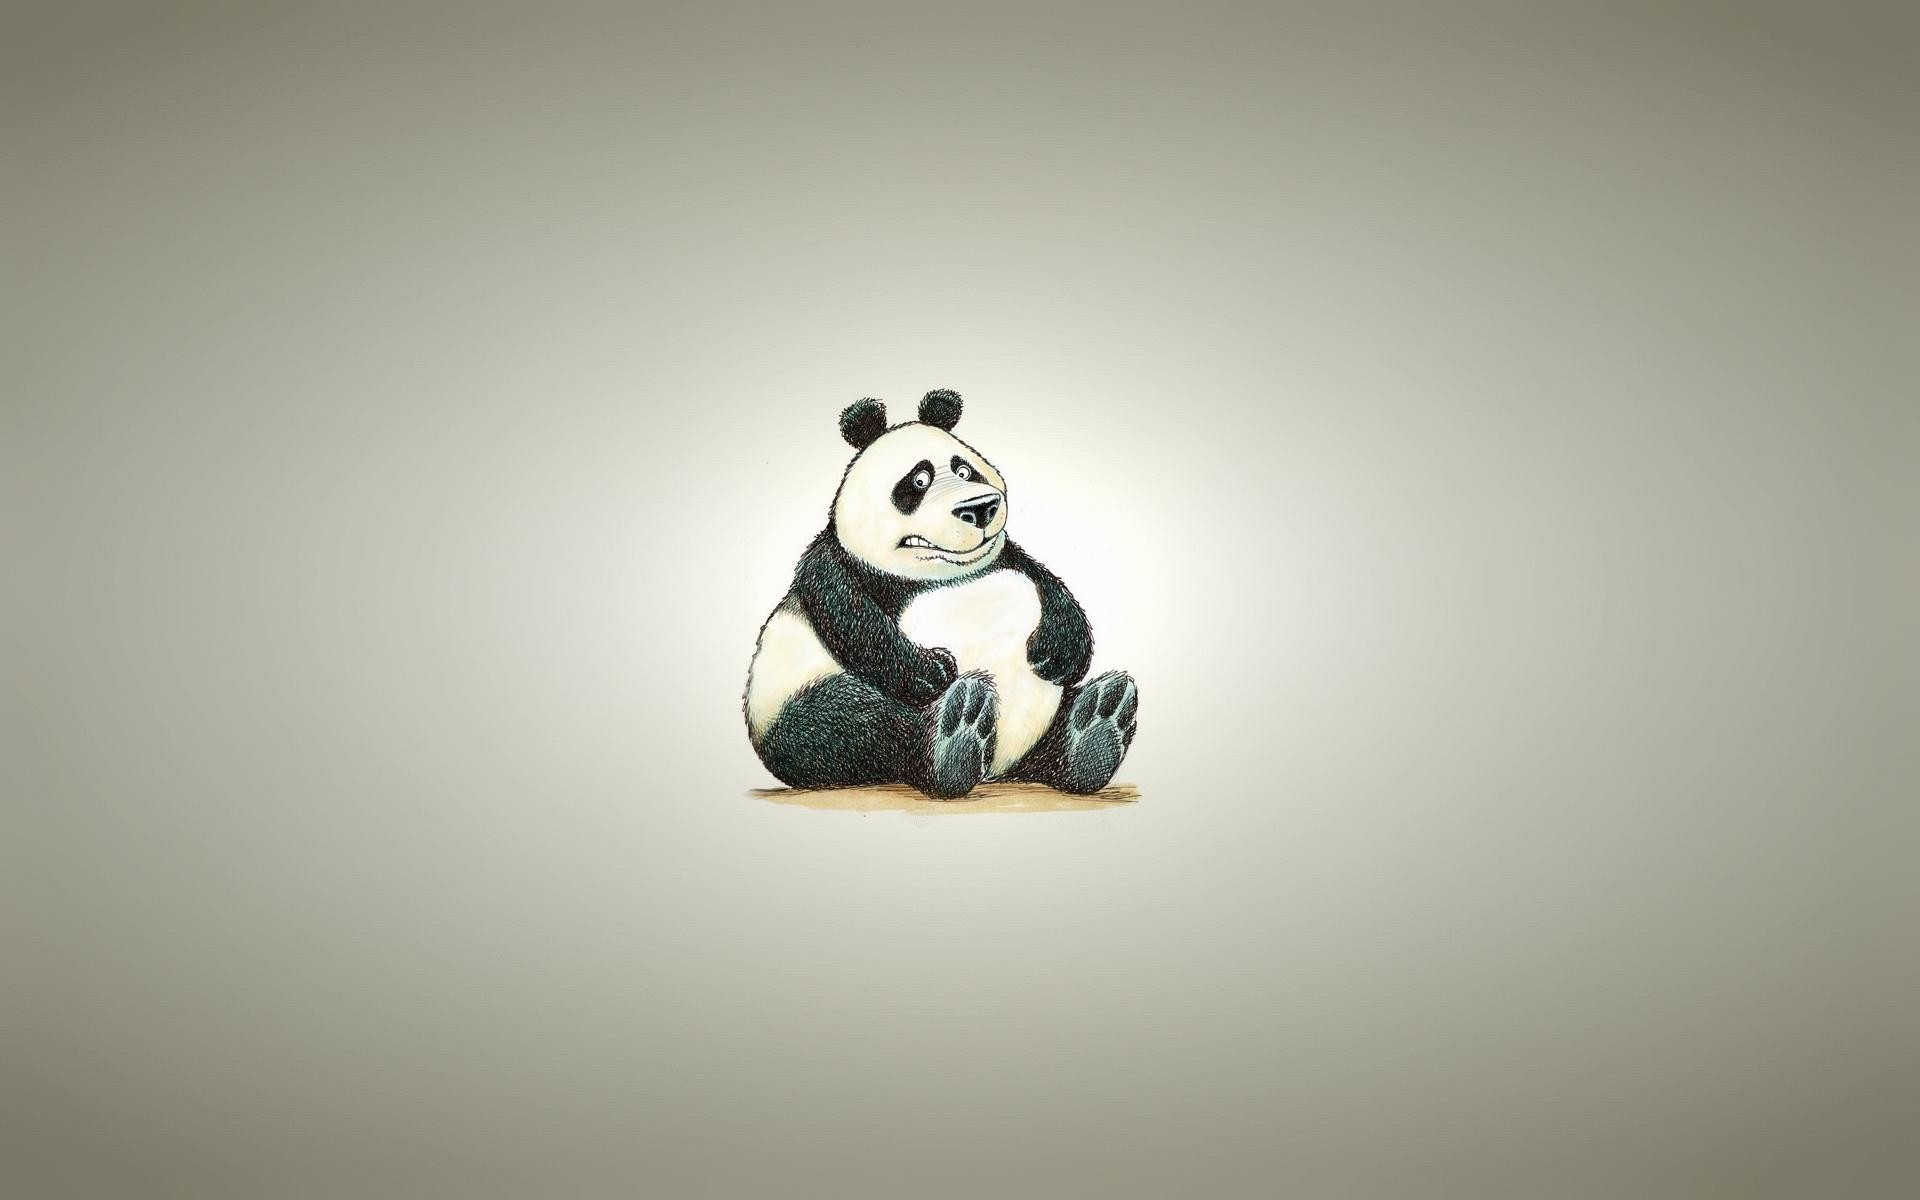 1920x1200 Wallpaper-HD-Fat-Panda-Bear